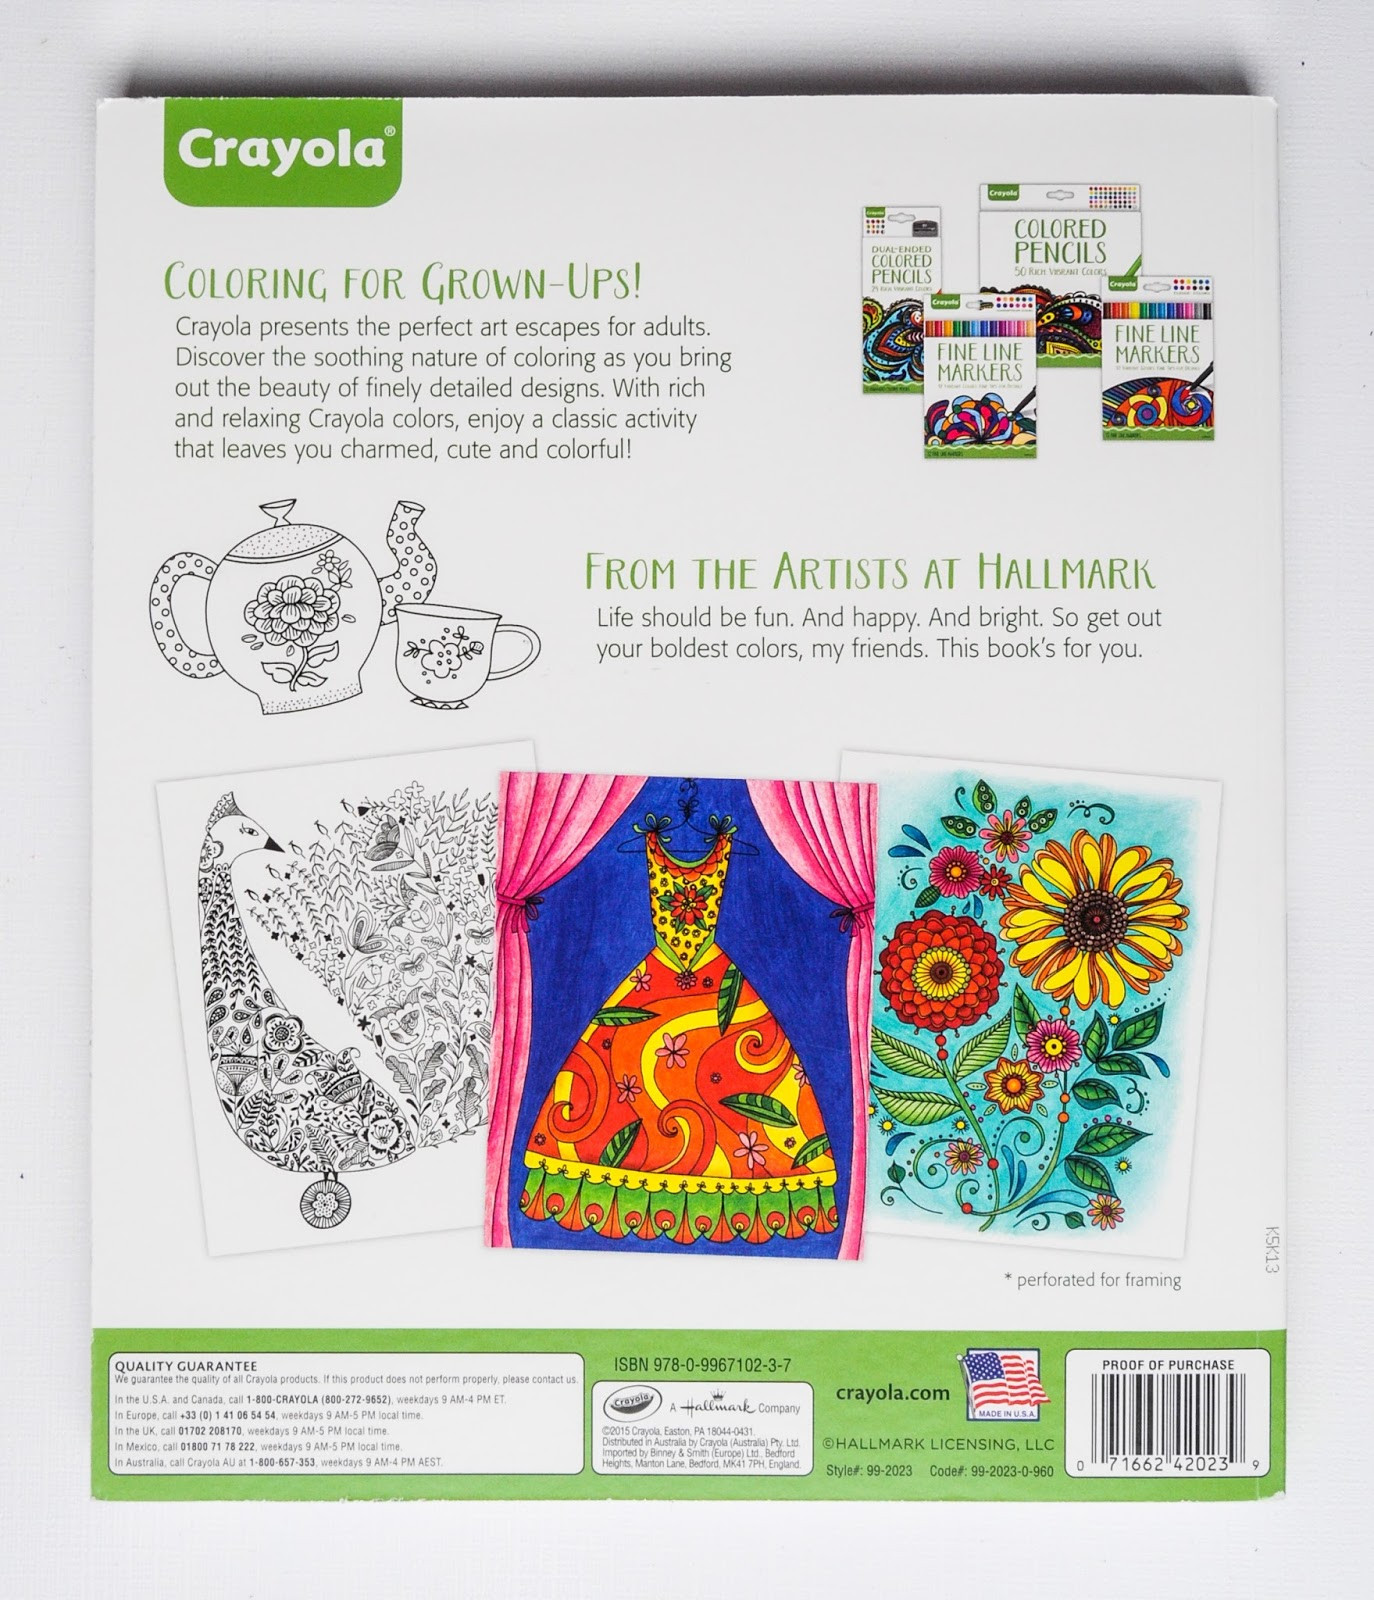 Best ideas about Crayola Adult Coloring Books . Save or Pin Crayola Adult Coloring Books Now.